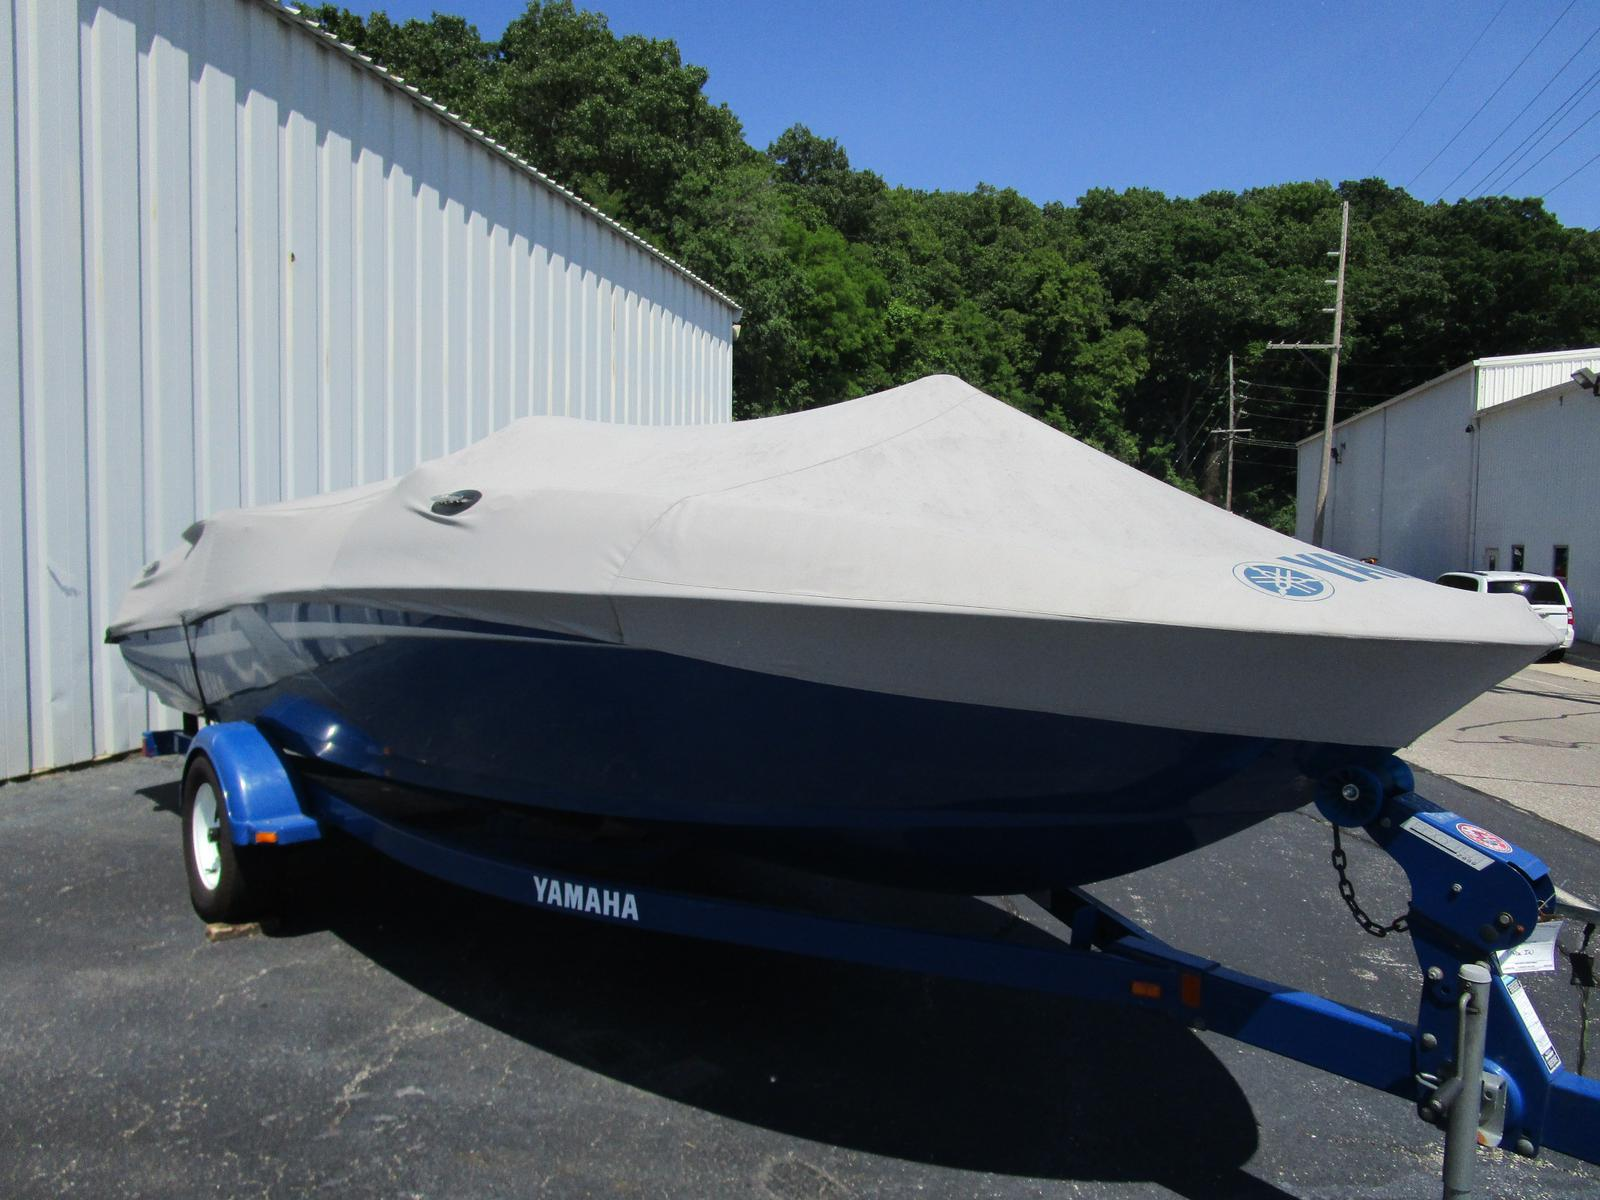 2002 Yamaha boat for sale, model of the boat is LX 2000 & Image # 1 of 5